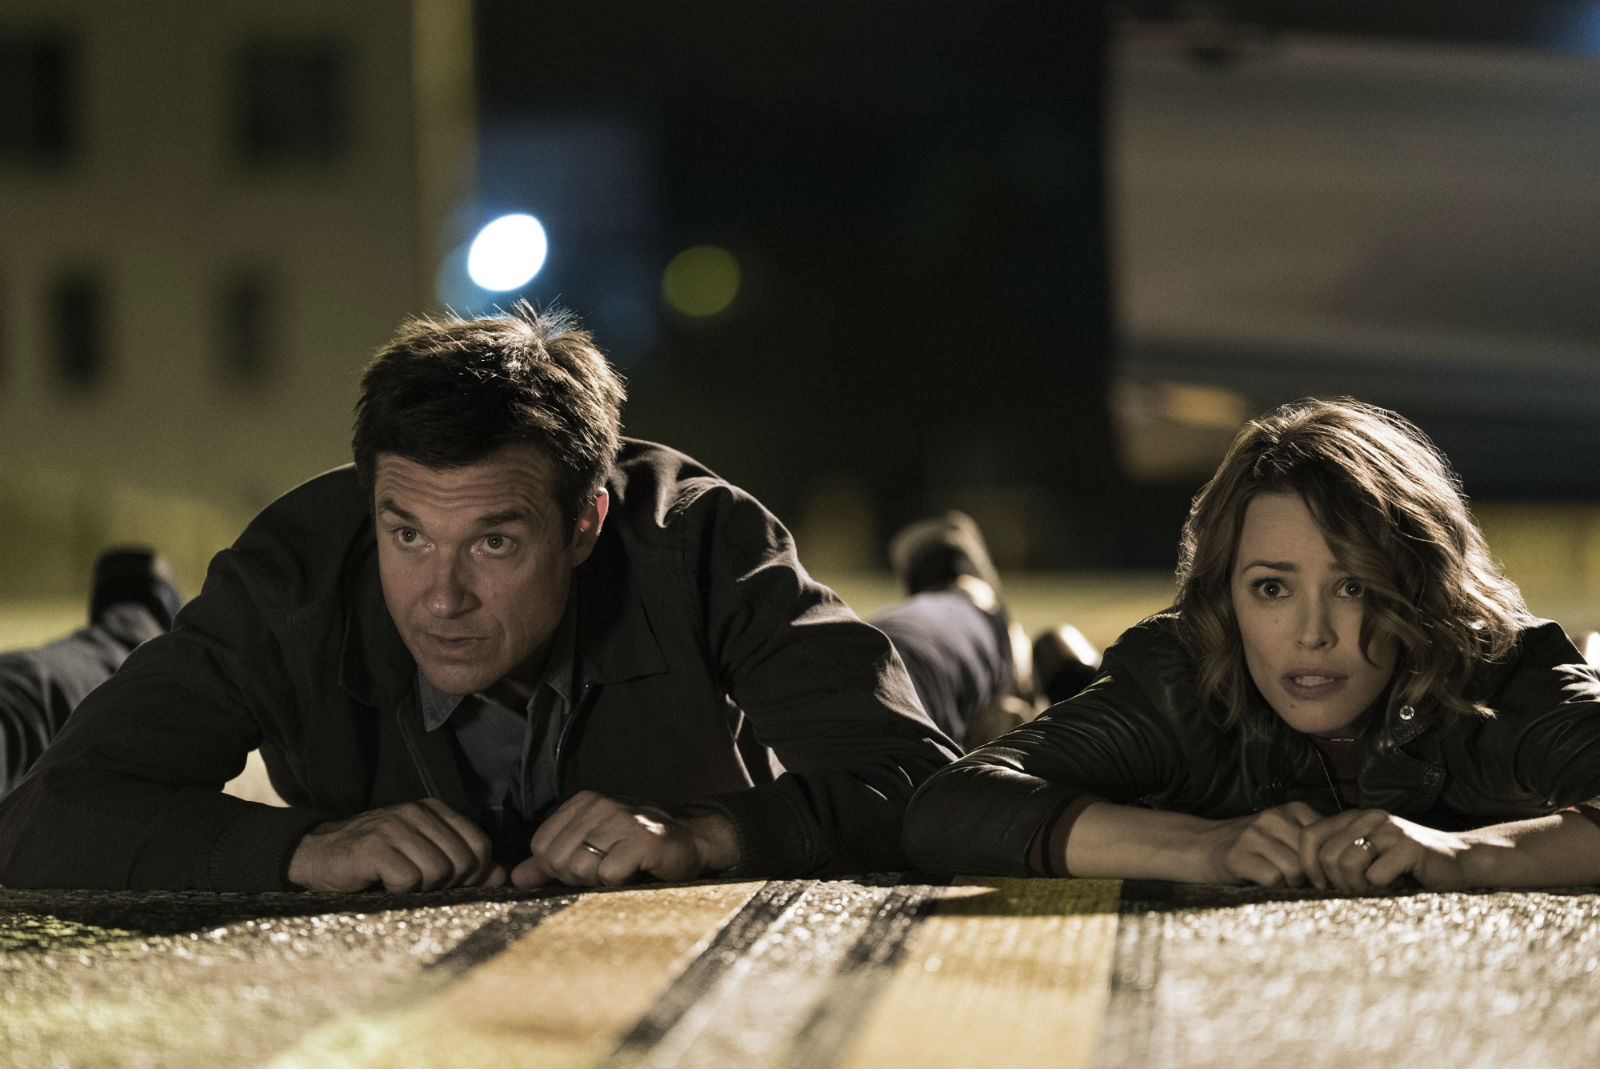 Jason Bateman and Rachel McAdams' game-playing goes a bit far in Game Night